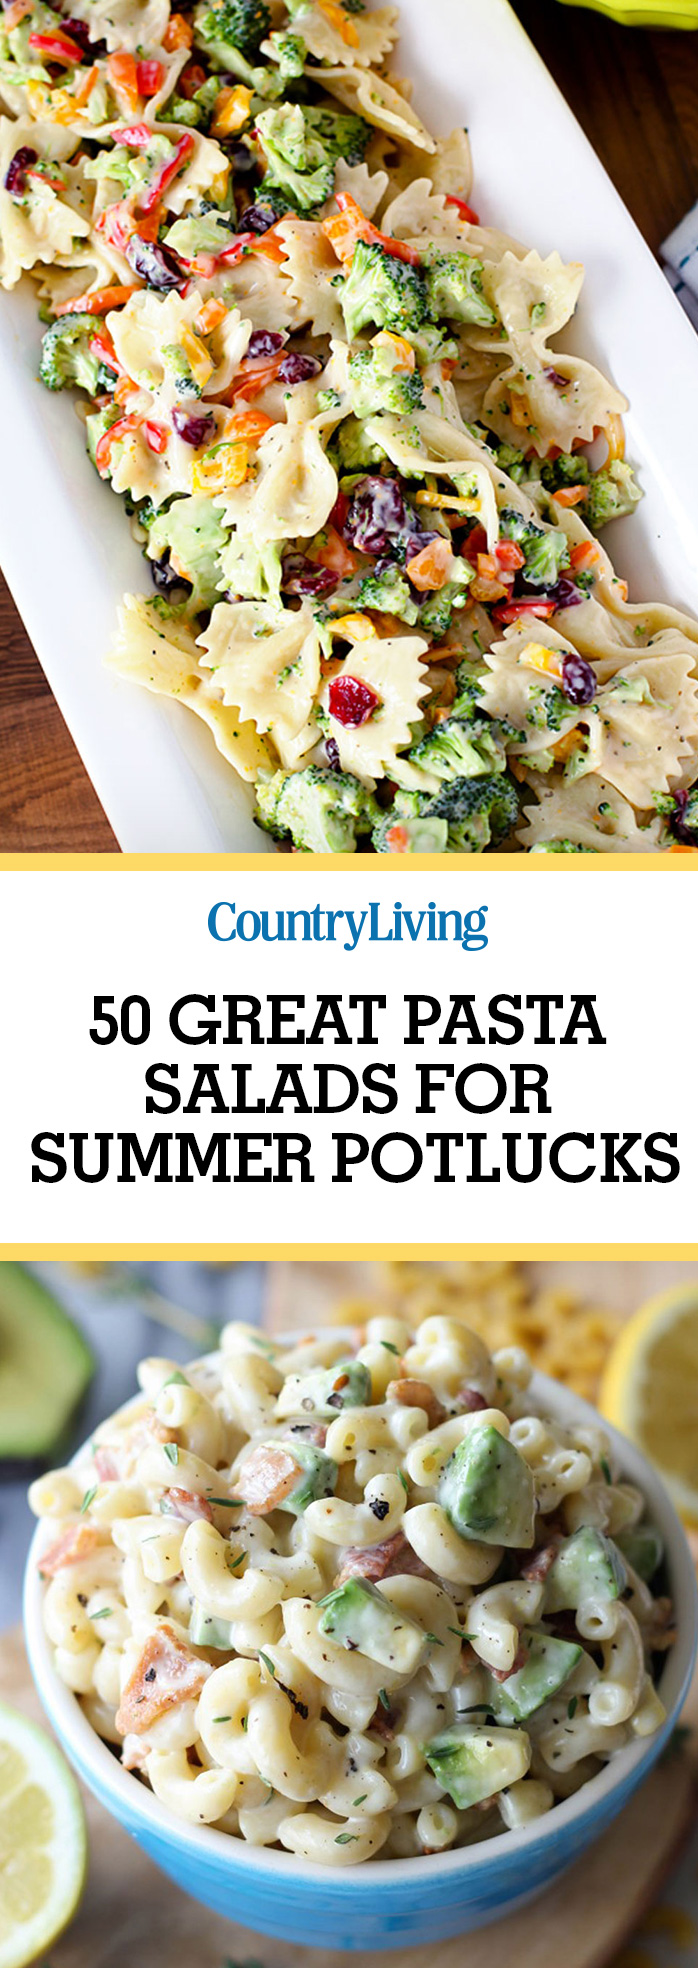 Amazing Cold Pasta Side Dishes Part - 7: Amazing Cold Pasta Side Dishes Amazing Design